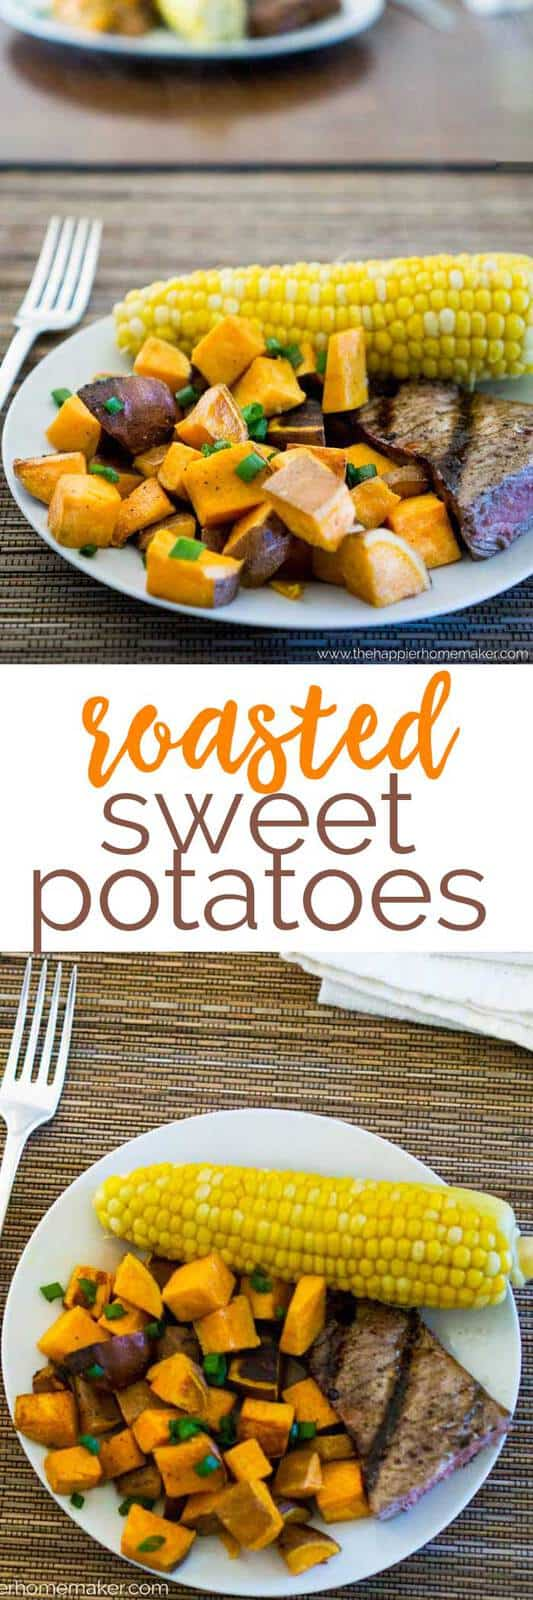 These simple roasted sweet potatoes are an easy healthy side dish option-even my kids love these!